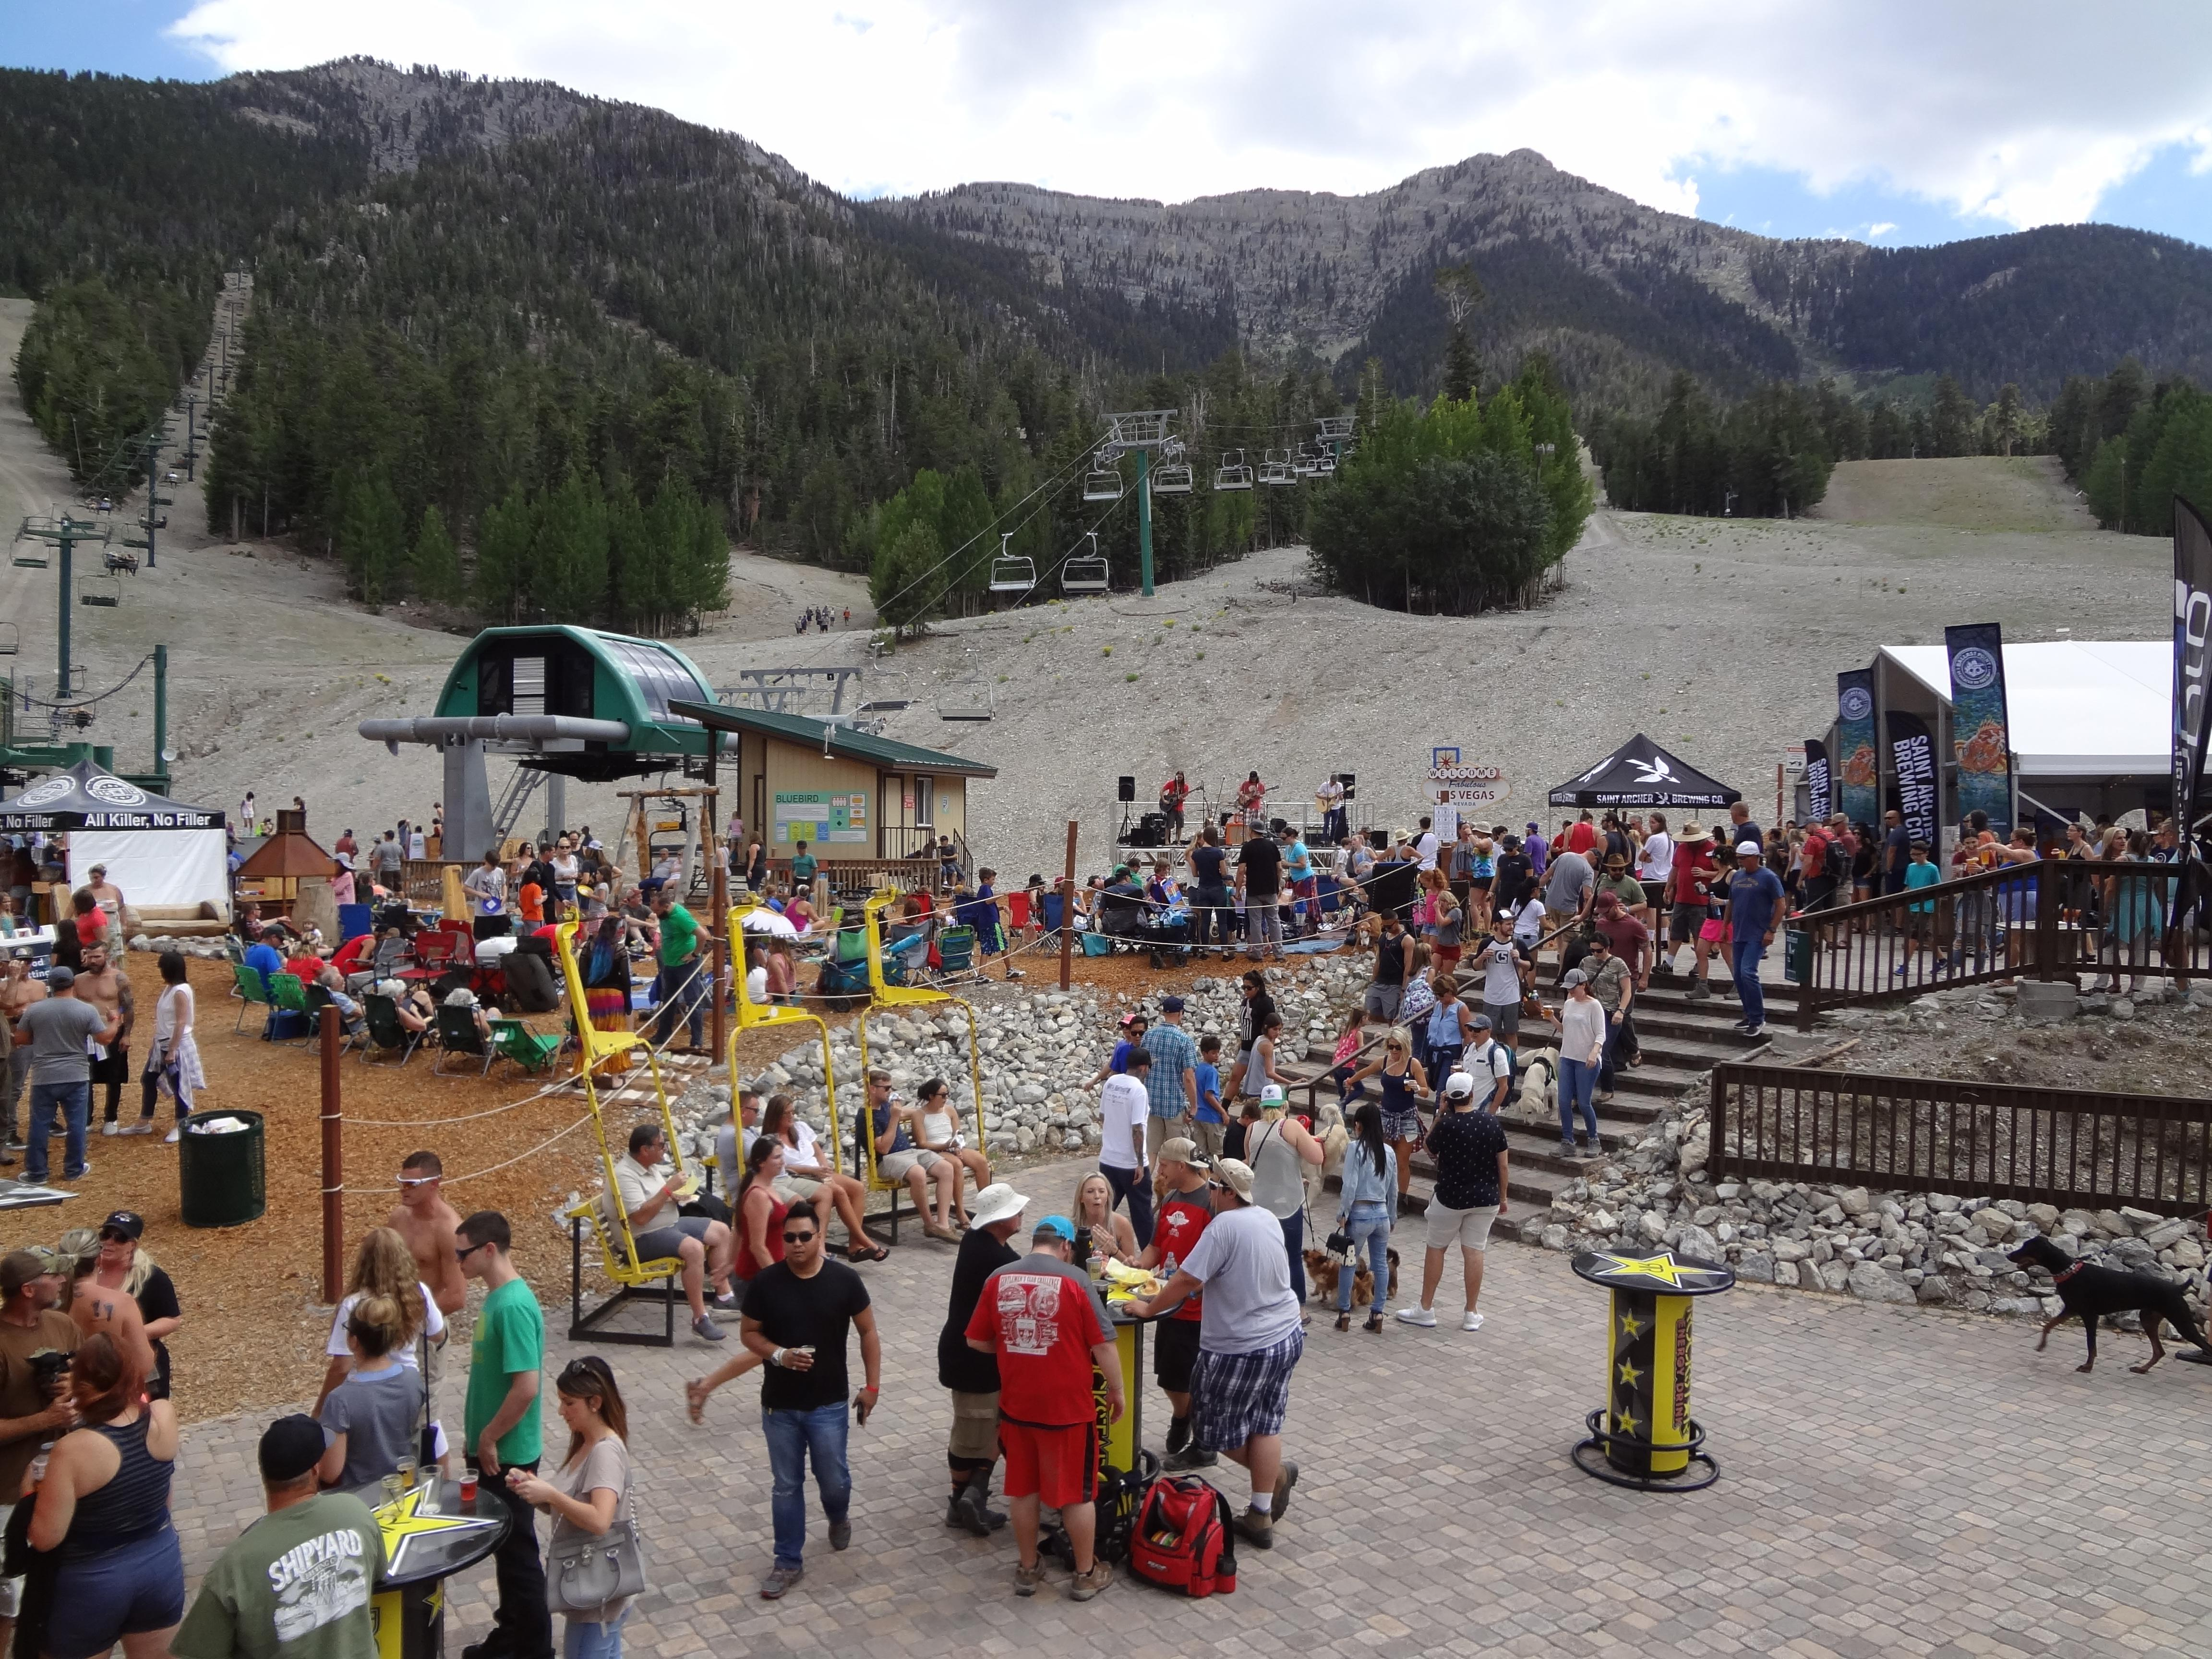 Mountain Fest, featuring the annual Birdies and Beers disc golf competition, takes place Saturday, July 22, 2017, at Lee Canyon. (Photo provided by Lee Canyon)